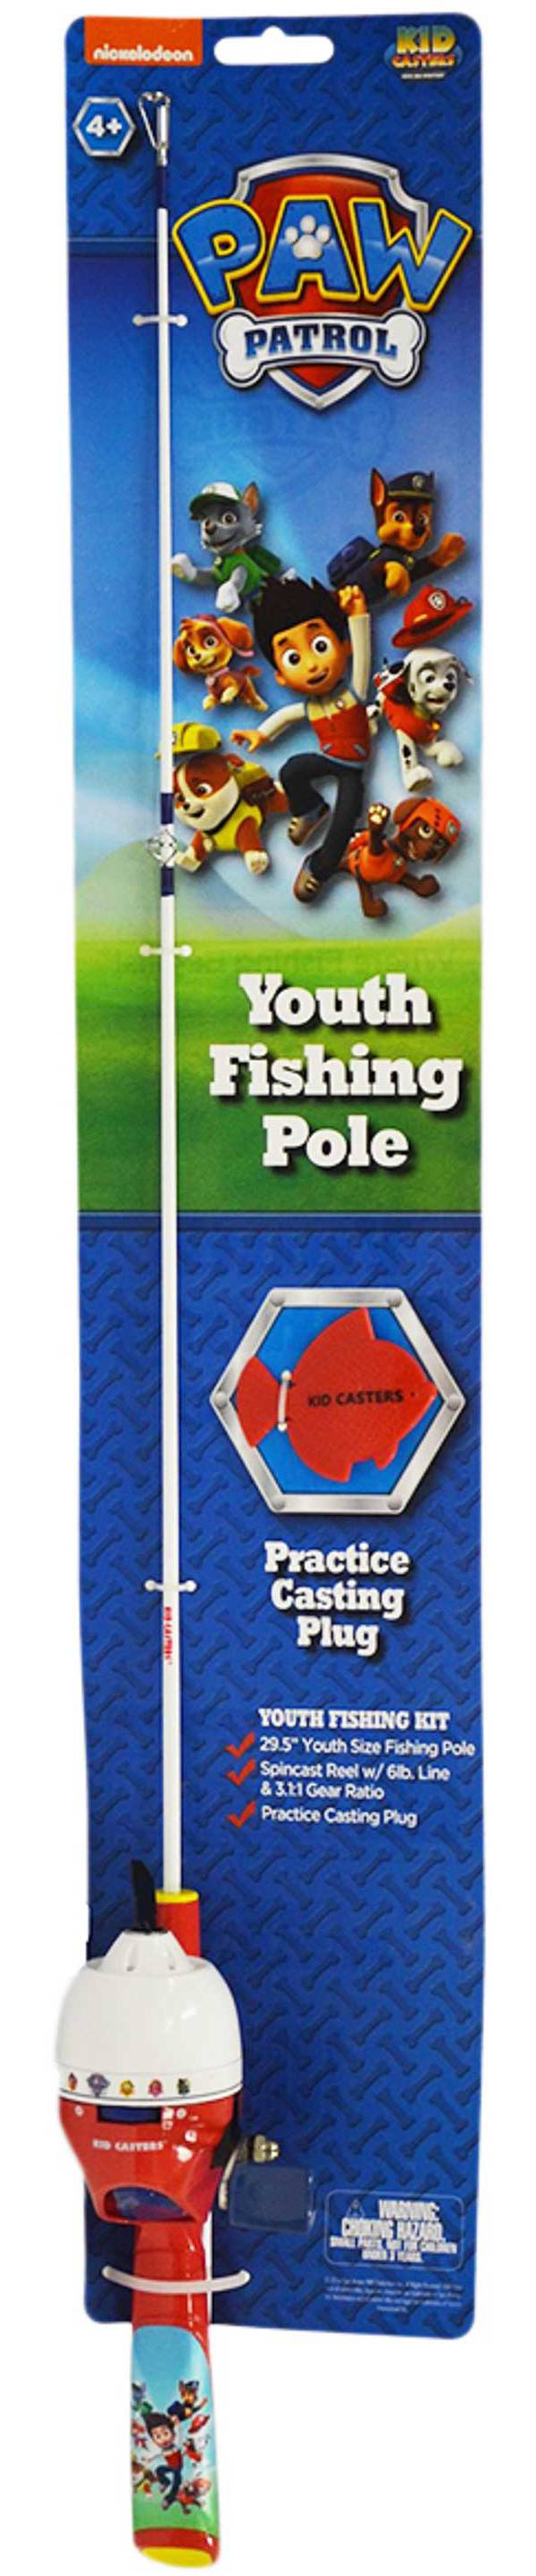 Lil' Anglers Paw Patrol Youth Fishing Kit product image